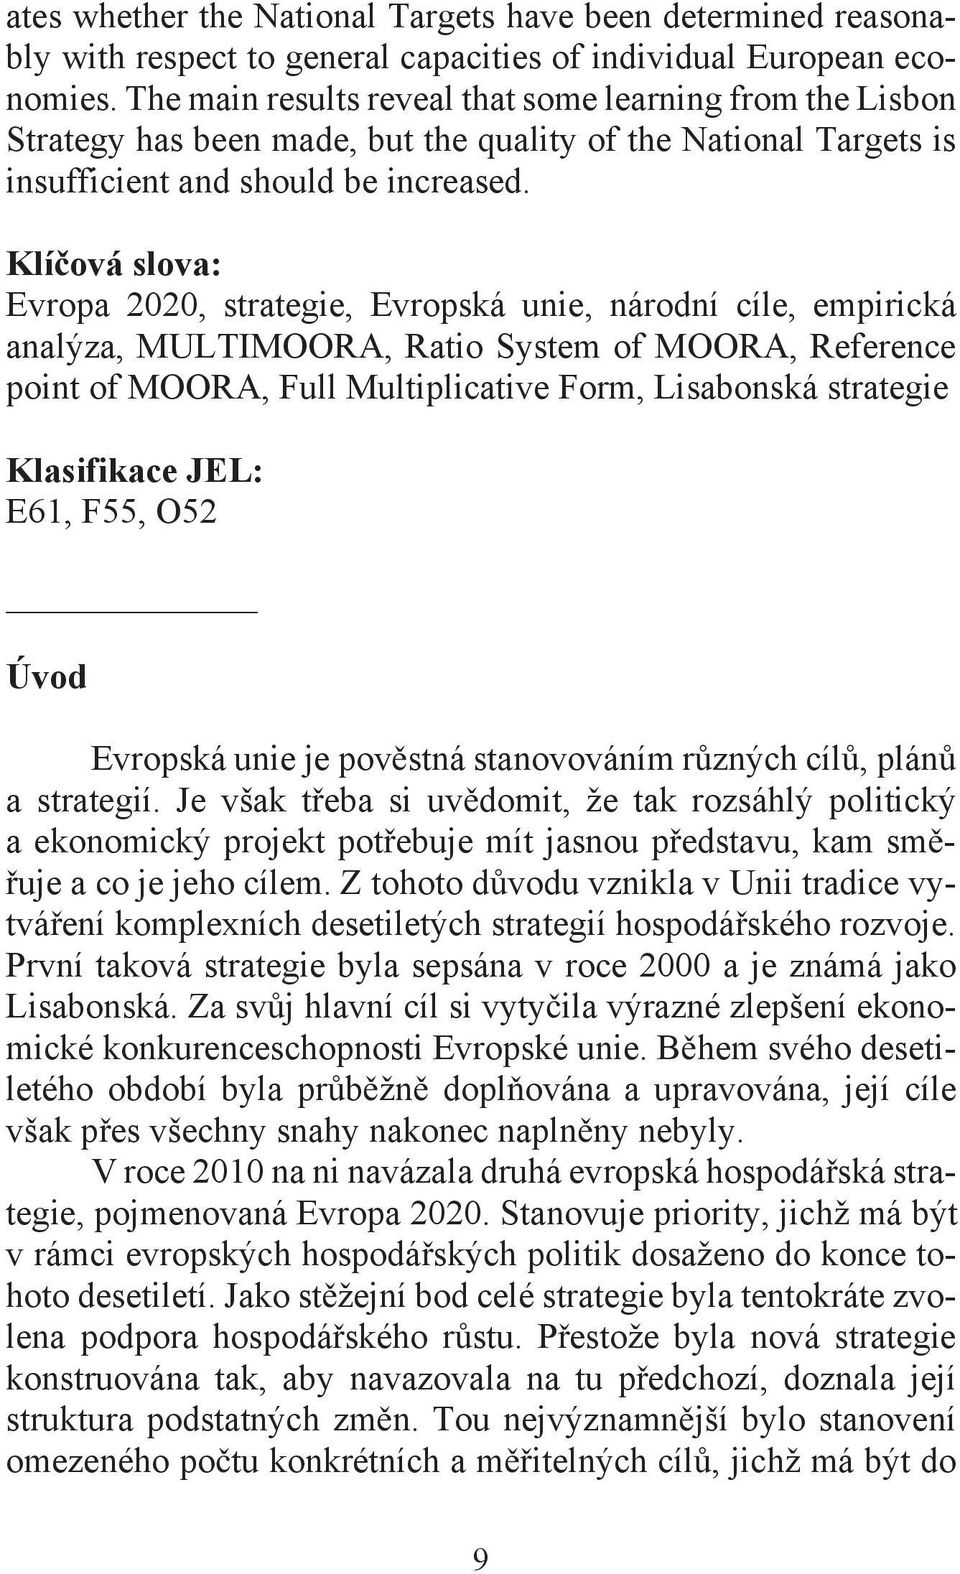 Klí ová slova: Evropa 2020, strategie, Evropská unie, národní cíle, empirická analýza, MULTIMOORA, Ratio System of MOORA, Reference point of MOORA, Full Multiplicative Form, Lisabonská strategie